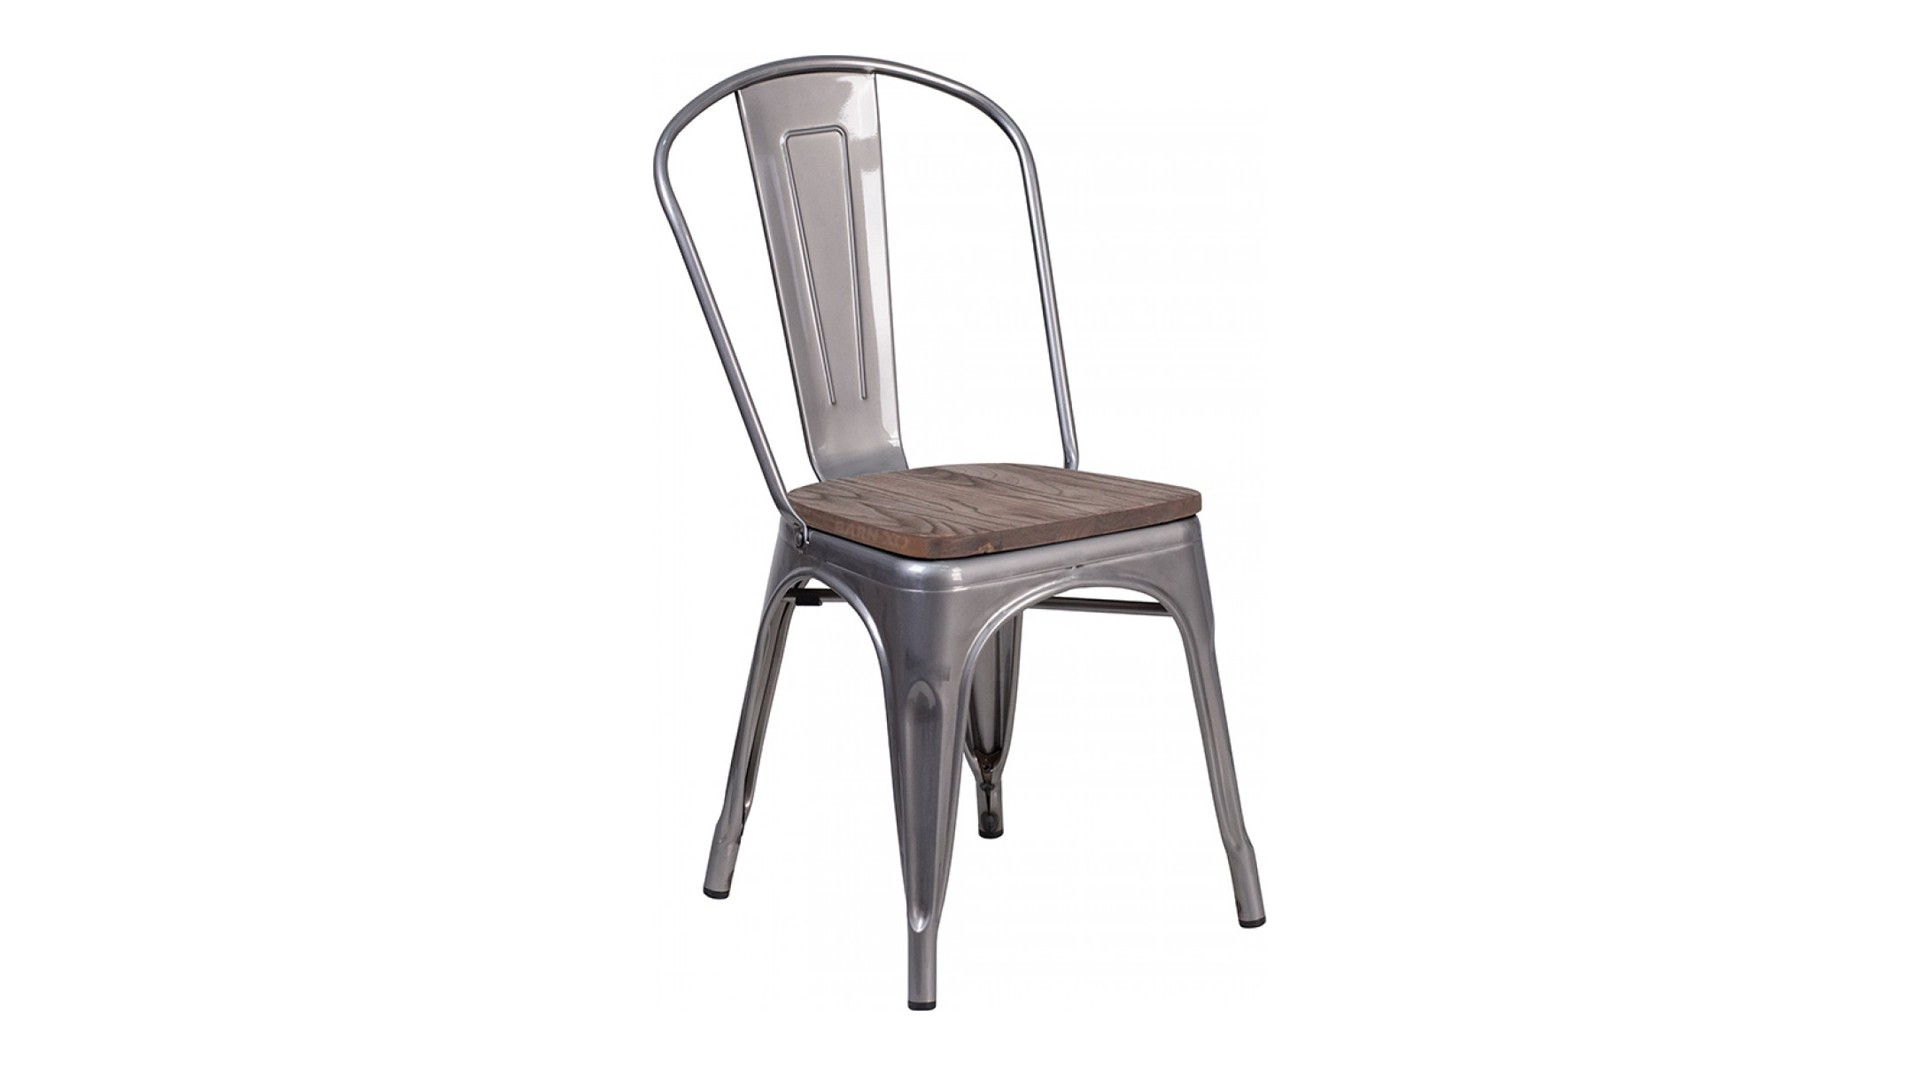 17 inch Metal Stackable Dining Chair with Wood Seat (Clear Coat)